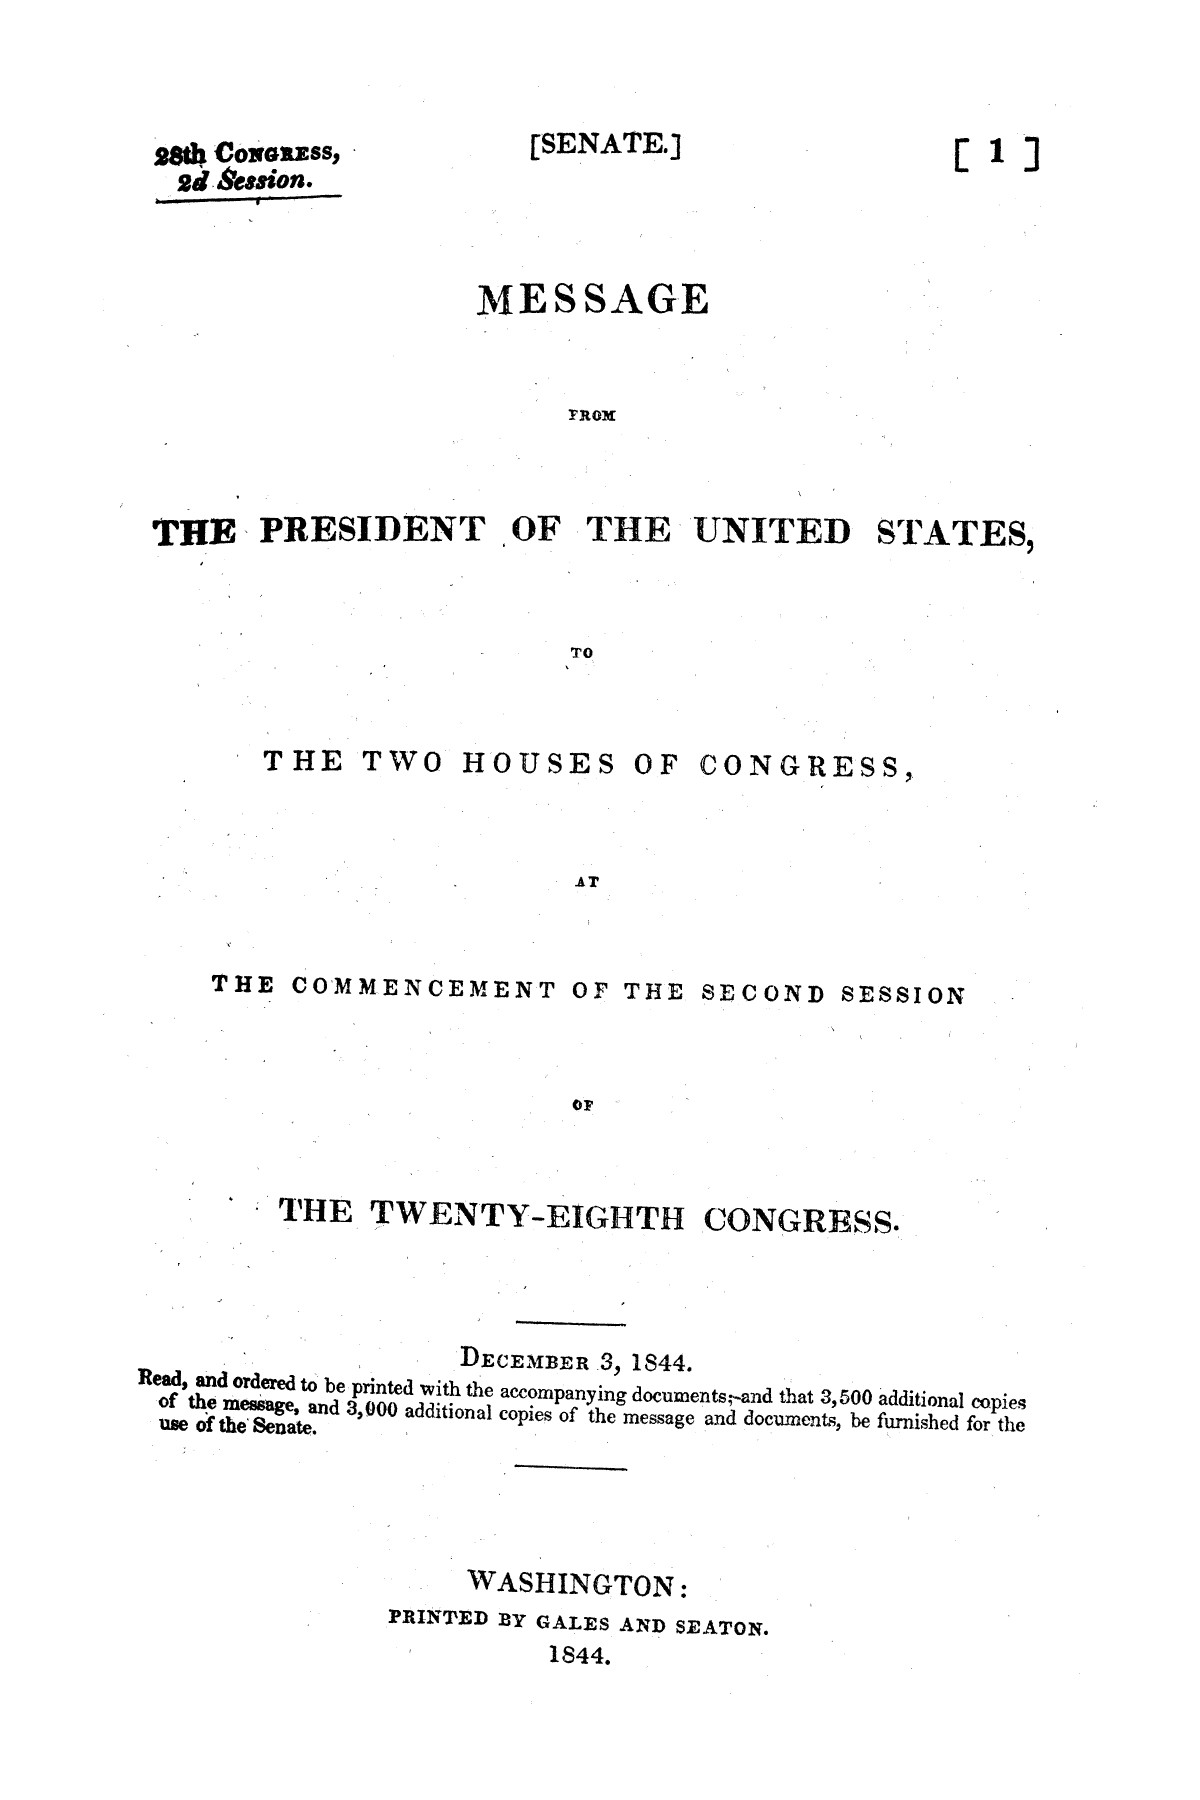 Message from the President of the United States to the two houses of Congress at the commencement of the Second Session of the Twenty-Eighth Congress. December 3, 1844.                                                                                                      [Sequence #]: 1 of 129